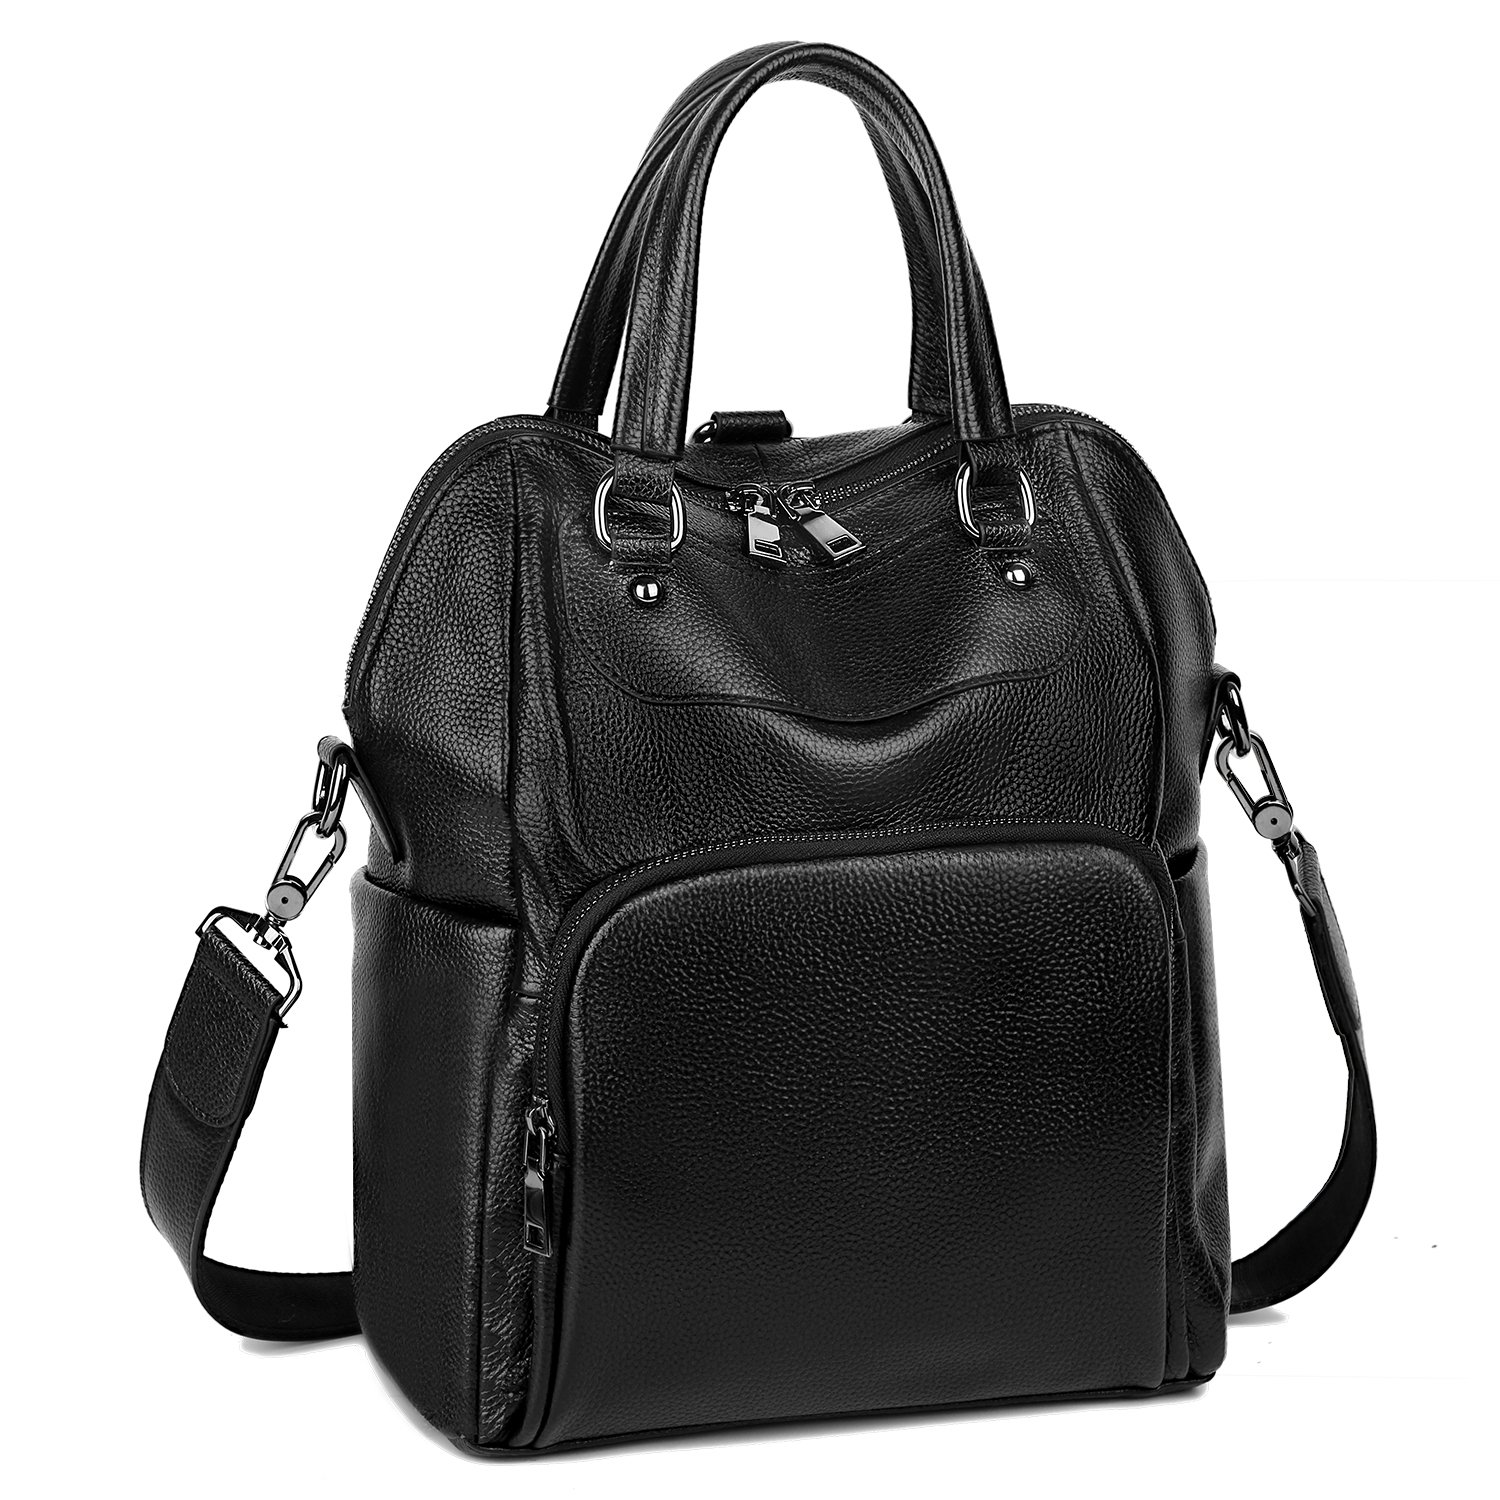 Leather Backpack for Women Women Backpack Purse Convertible Ladies Rucksack Crossbody Shoulder Bag From YALUXE